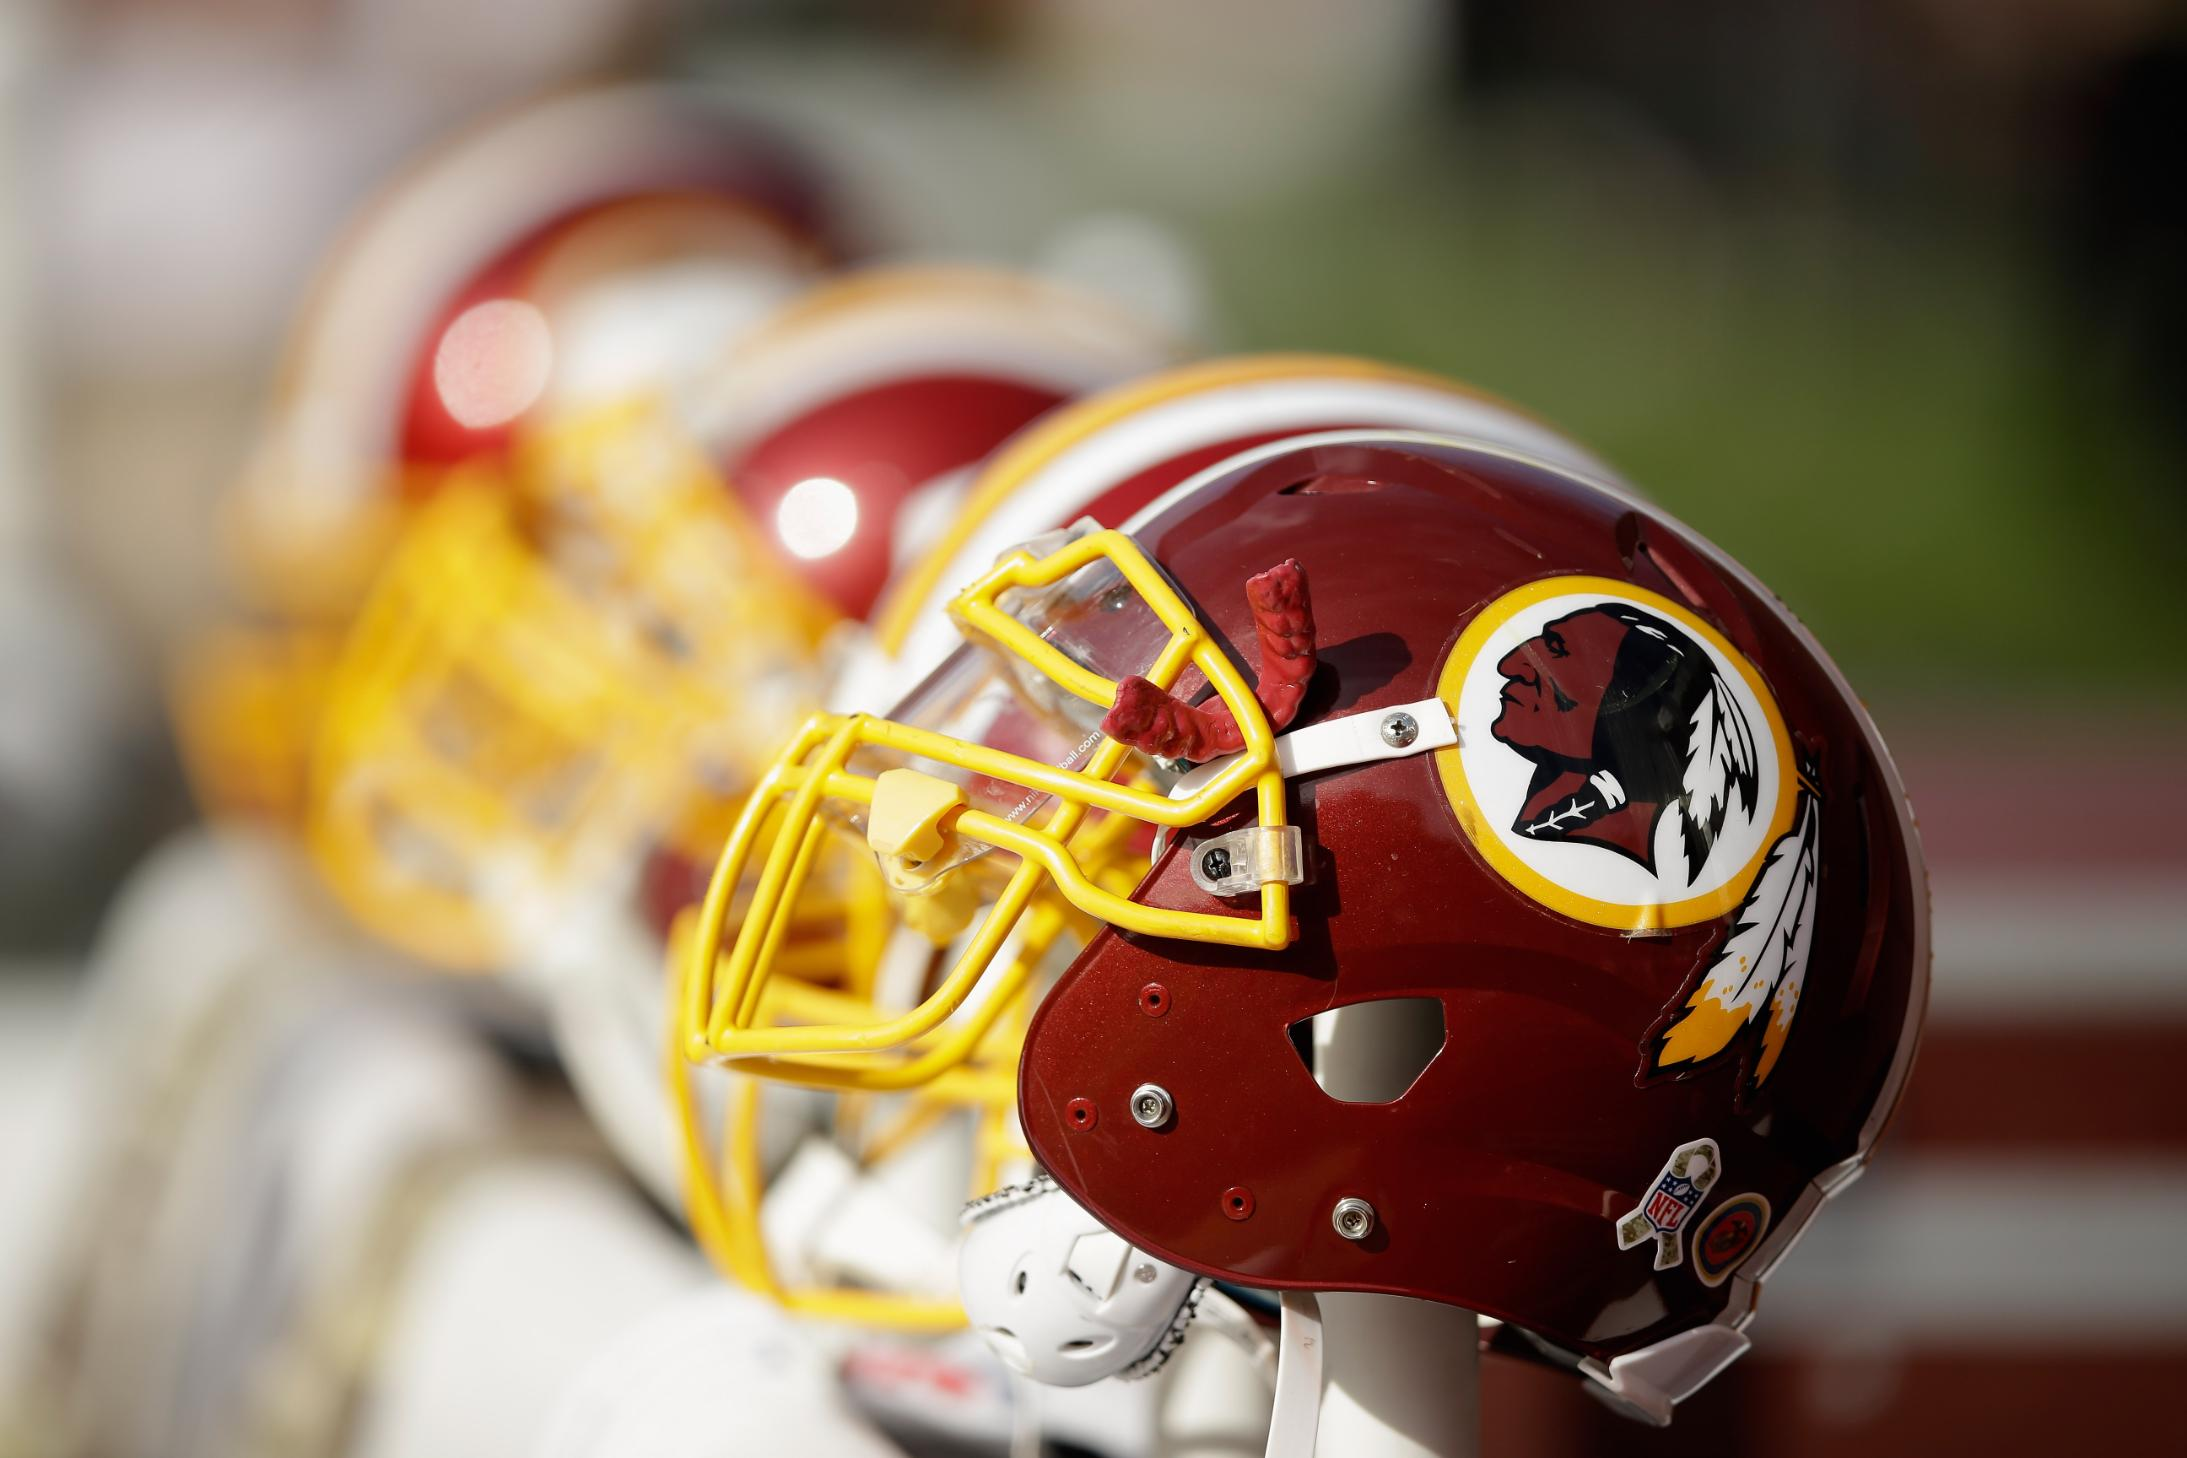 Washington Redskins will review name, team says